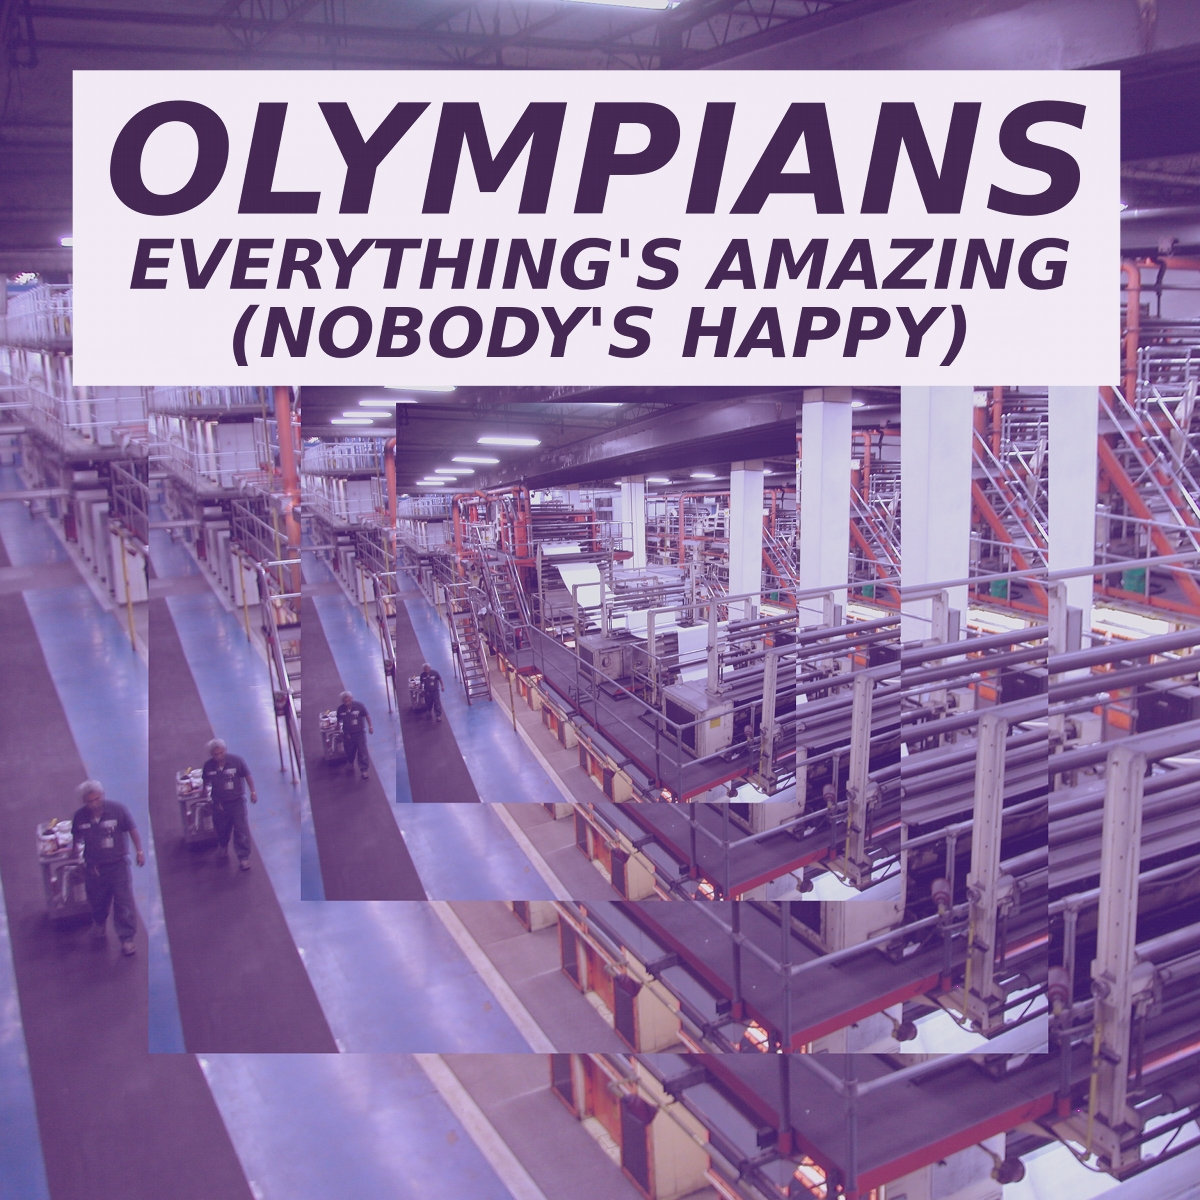 Olympians Book Club From Olympians Book Club by